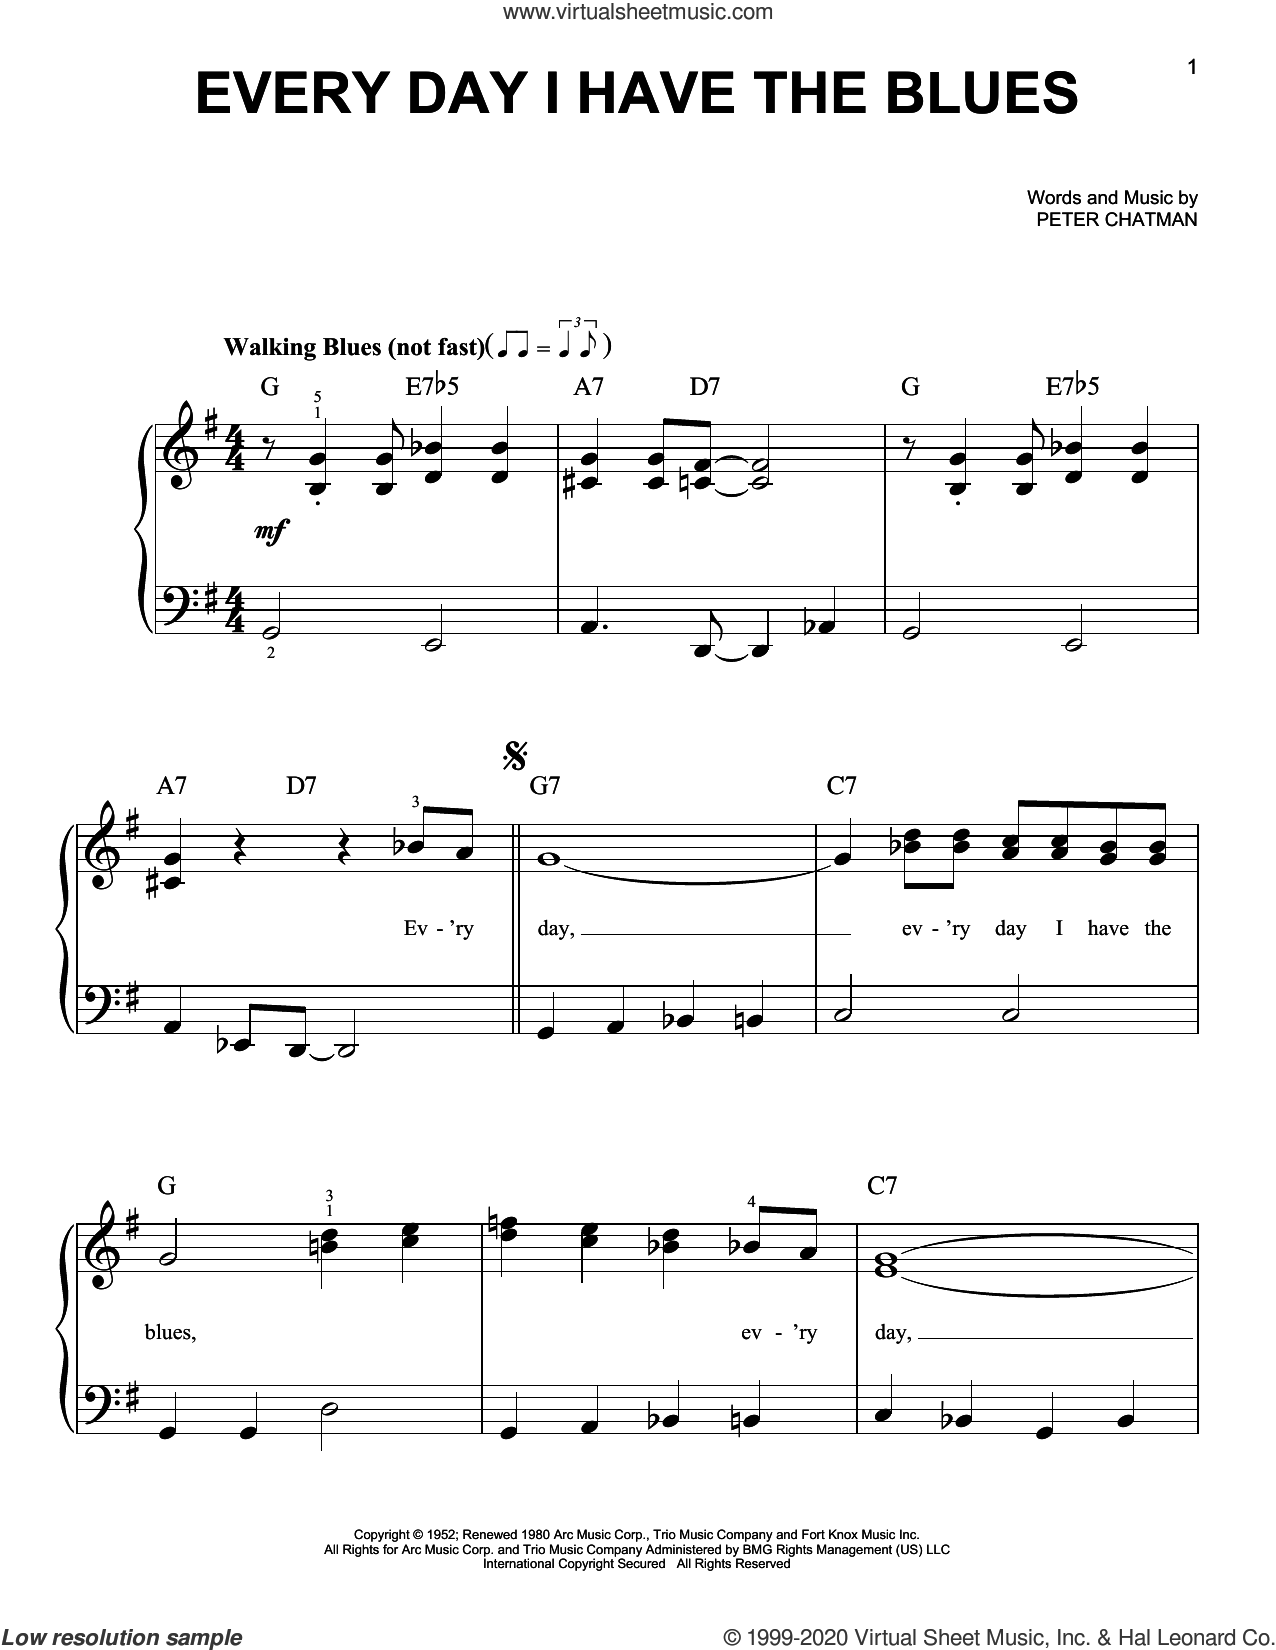 Every Day I Have The Blues sheet music for piano solo by B.B. King and Peter Chatman, beginner skill level